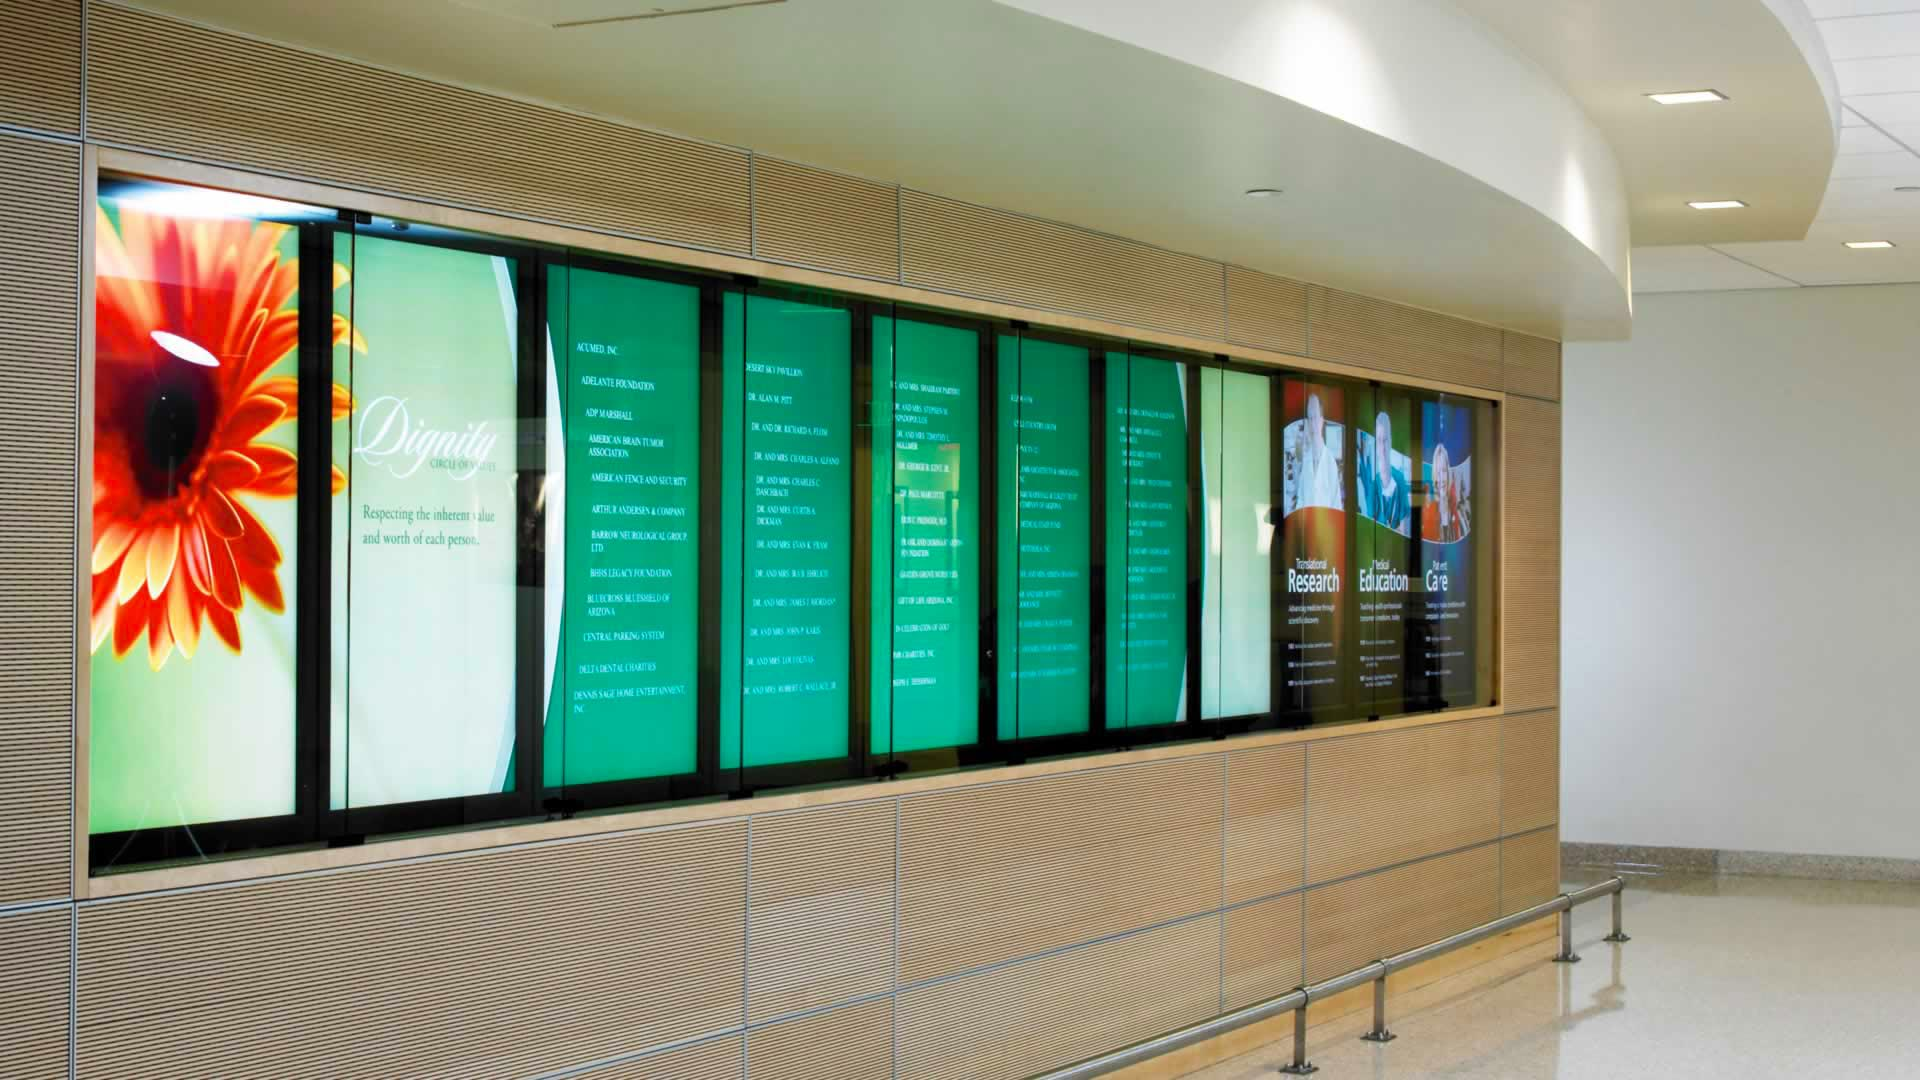 Interactive Digital Signage Display.jpg